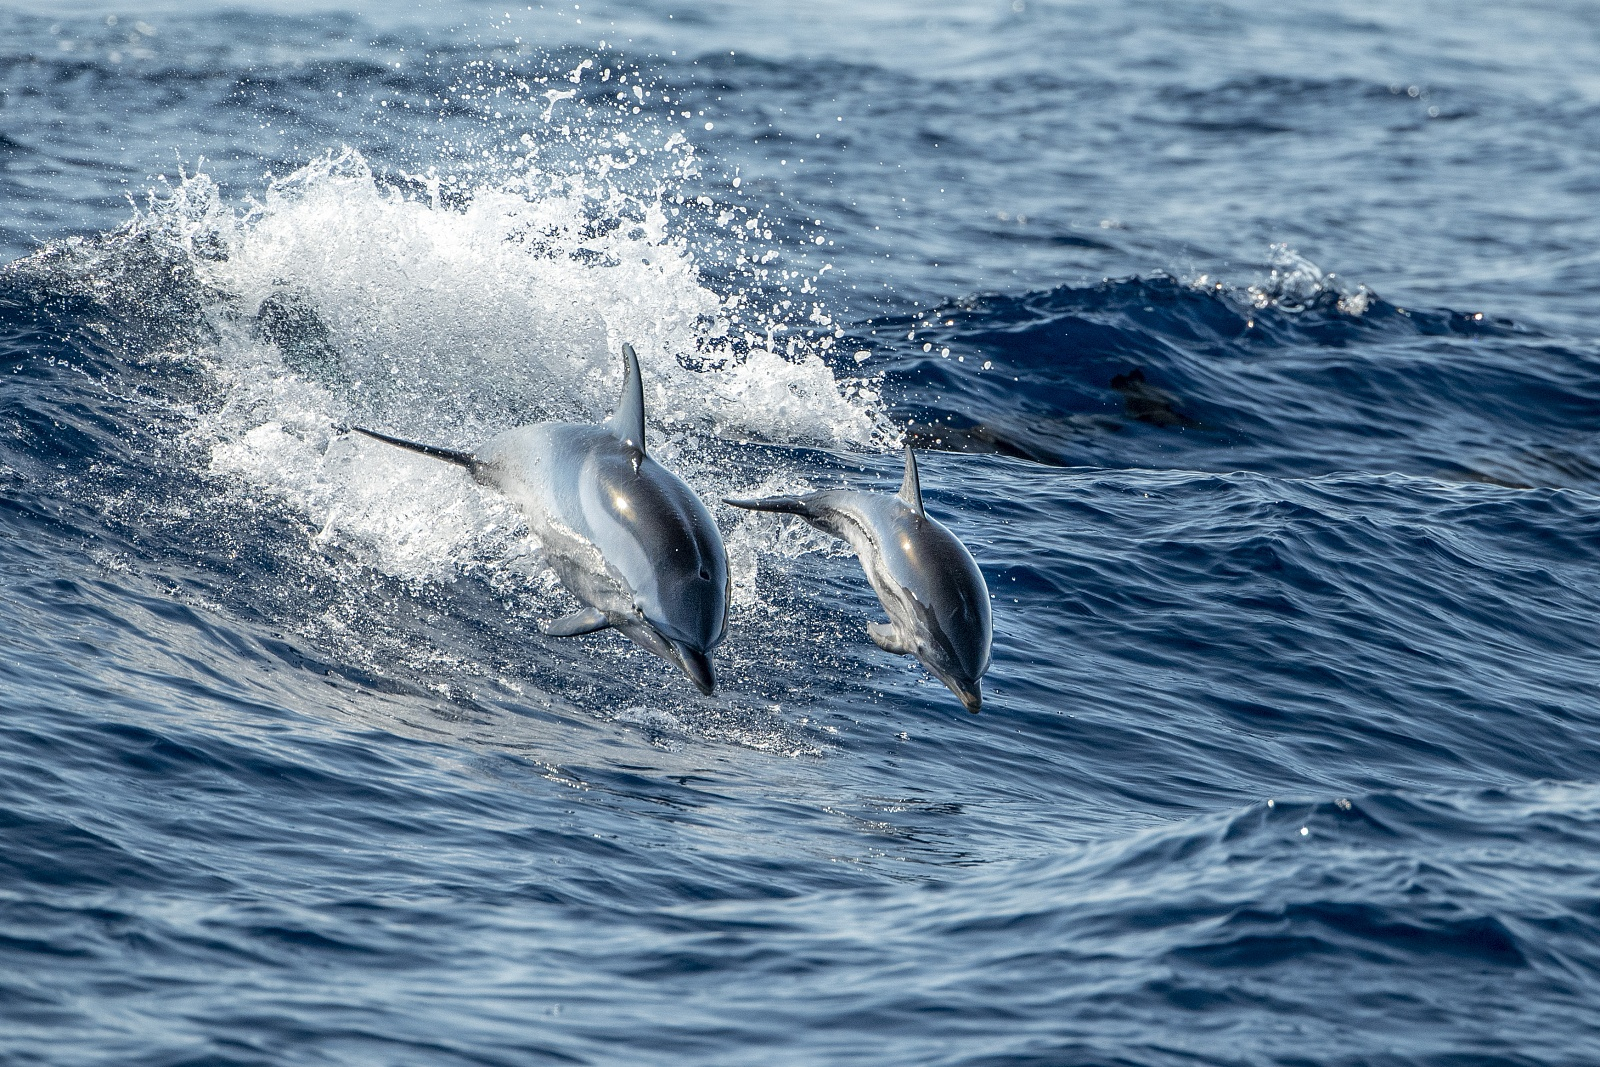 Born wild - Striped dolphin mother and baby